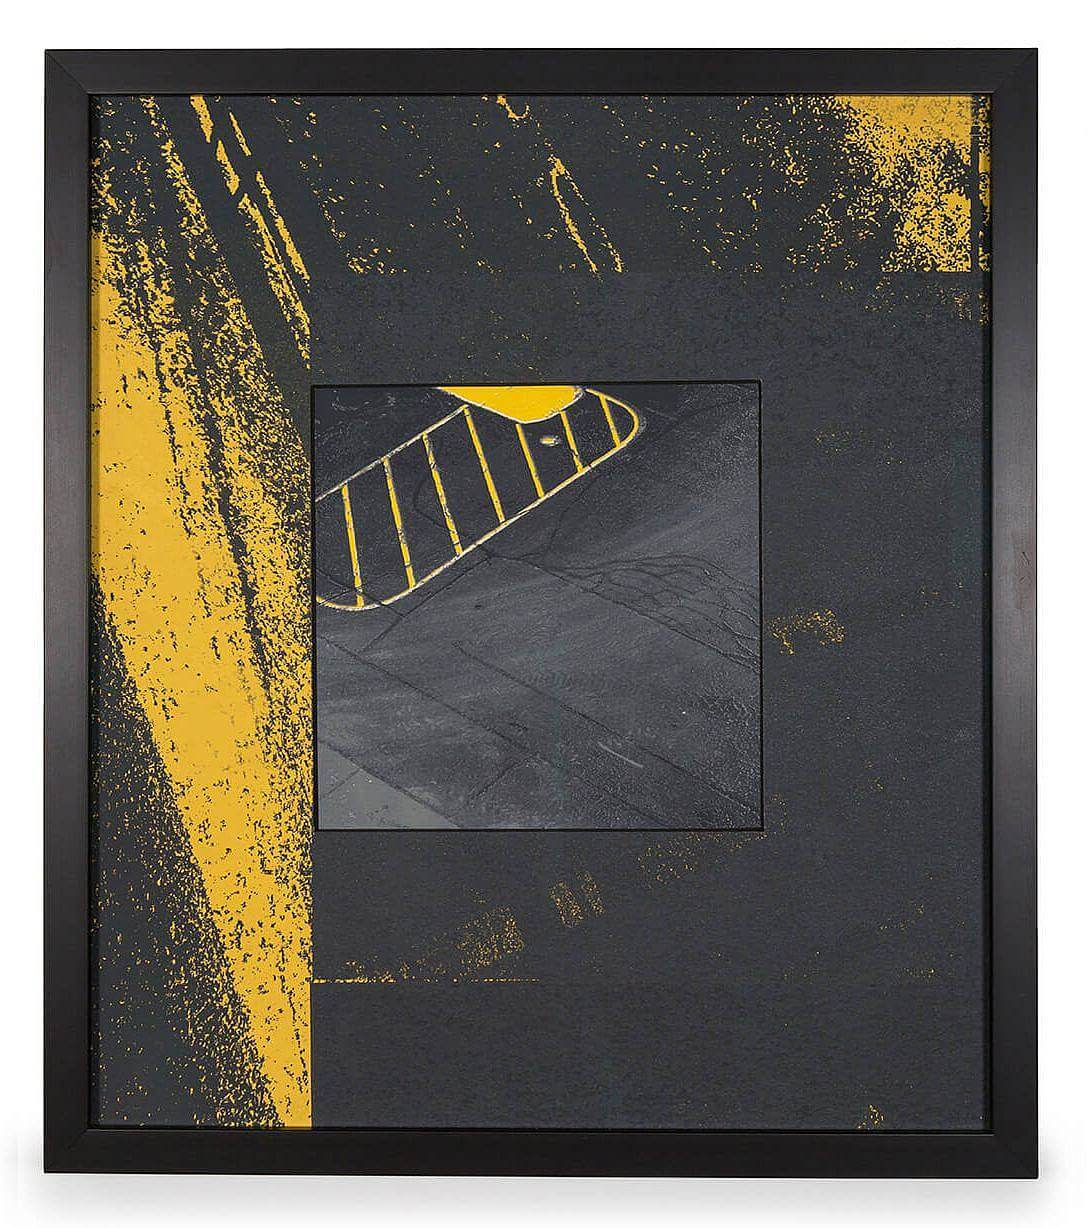 Image Description: There is a thick border around the image depicting a close-up image of black asphalt with yellow markings. The image in the center of the piece is a birds-eye view of an asphalt parking lost with a yellow outline of an oval with diagonal stripes going across.